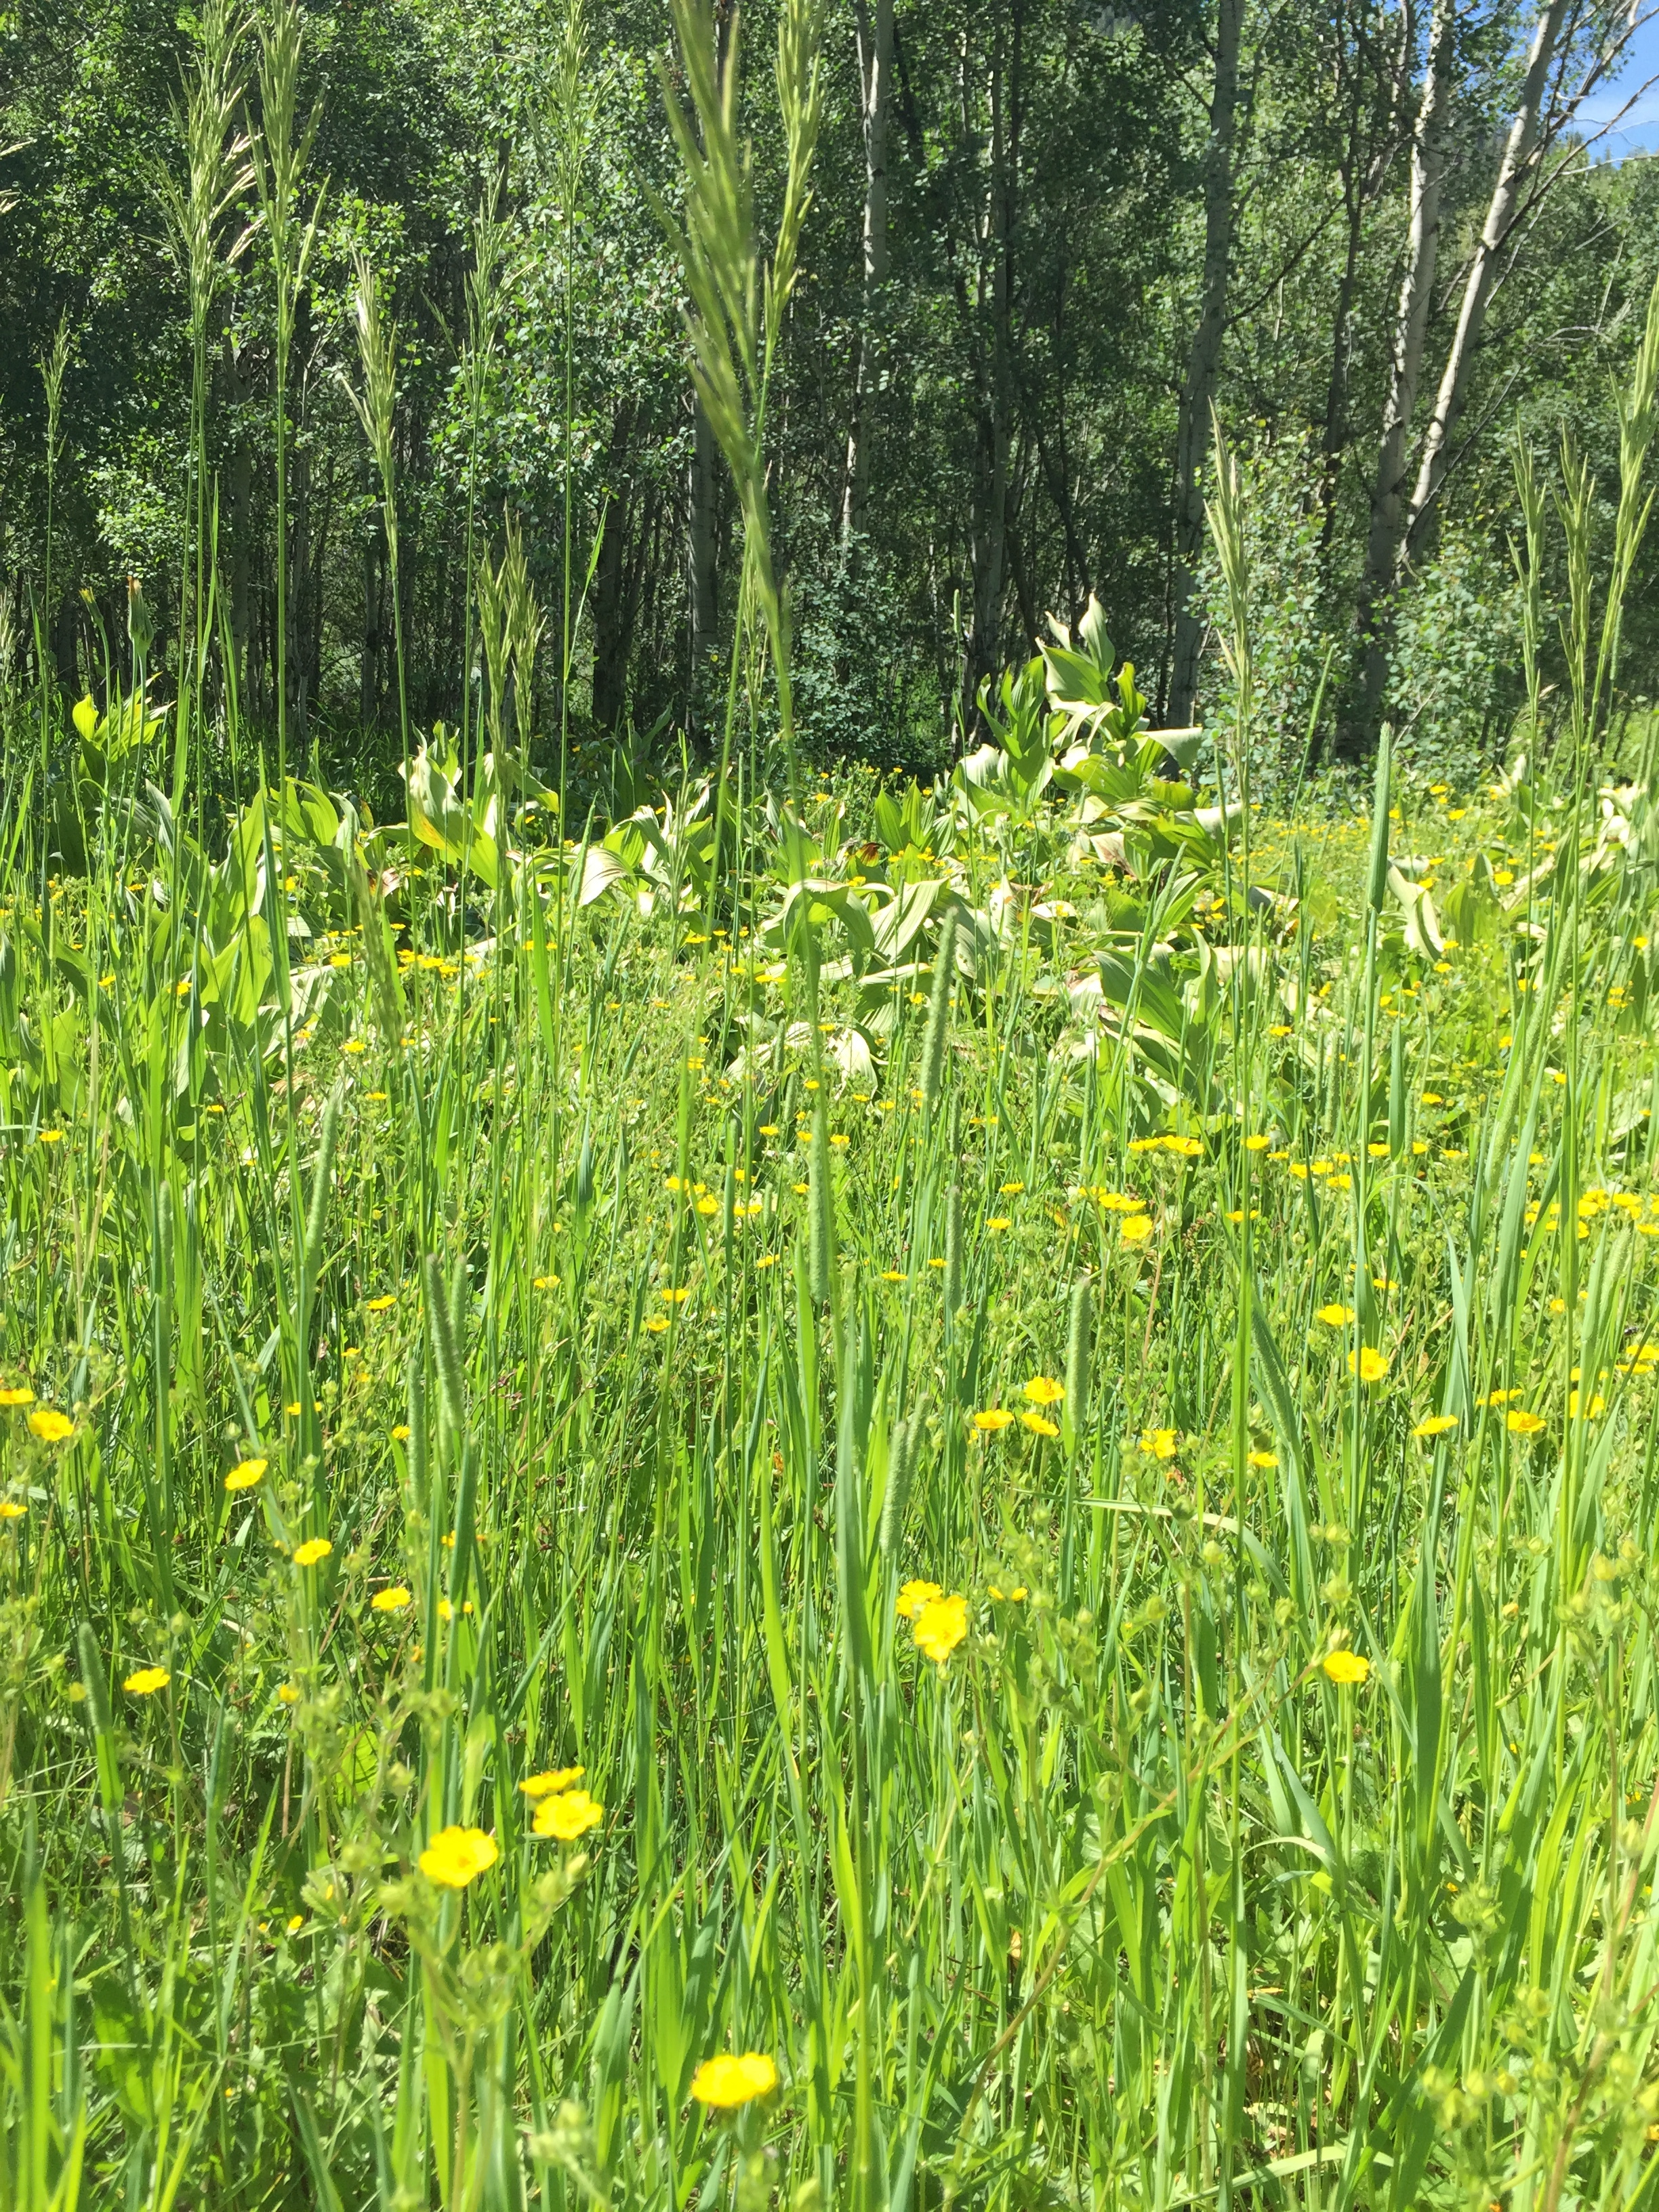 Aspen trees, skunk cabbage and buttercups.